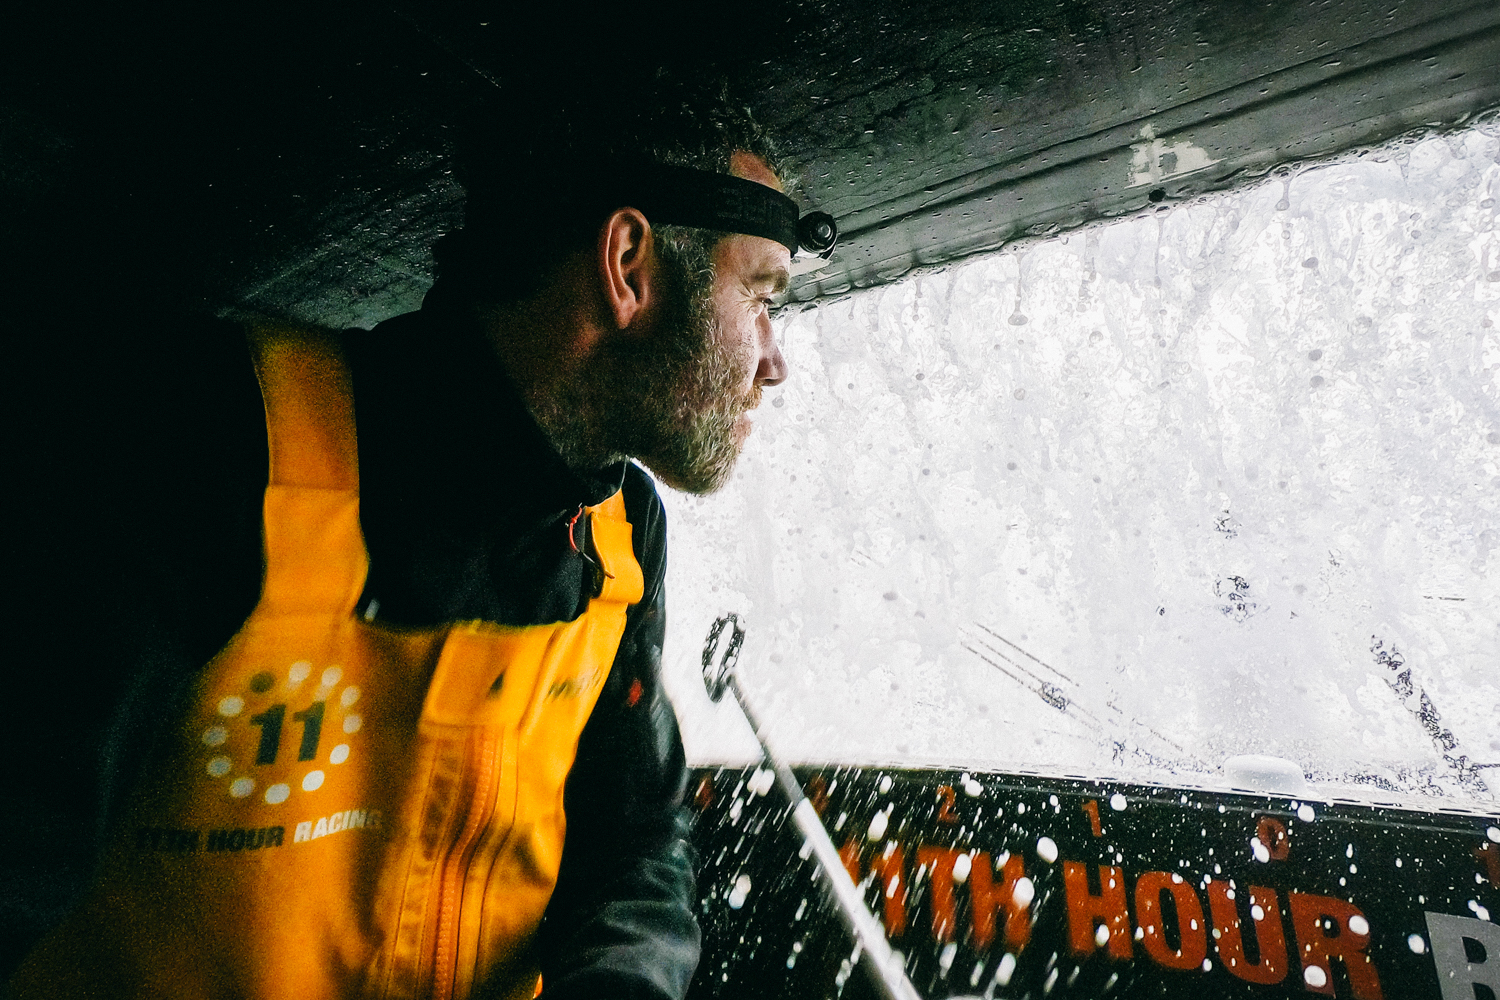 Amory Ross, OBR for 11th Hour Racing Team looking at water running over IMOCA 60 coach roof.